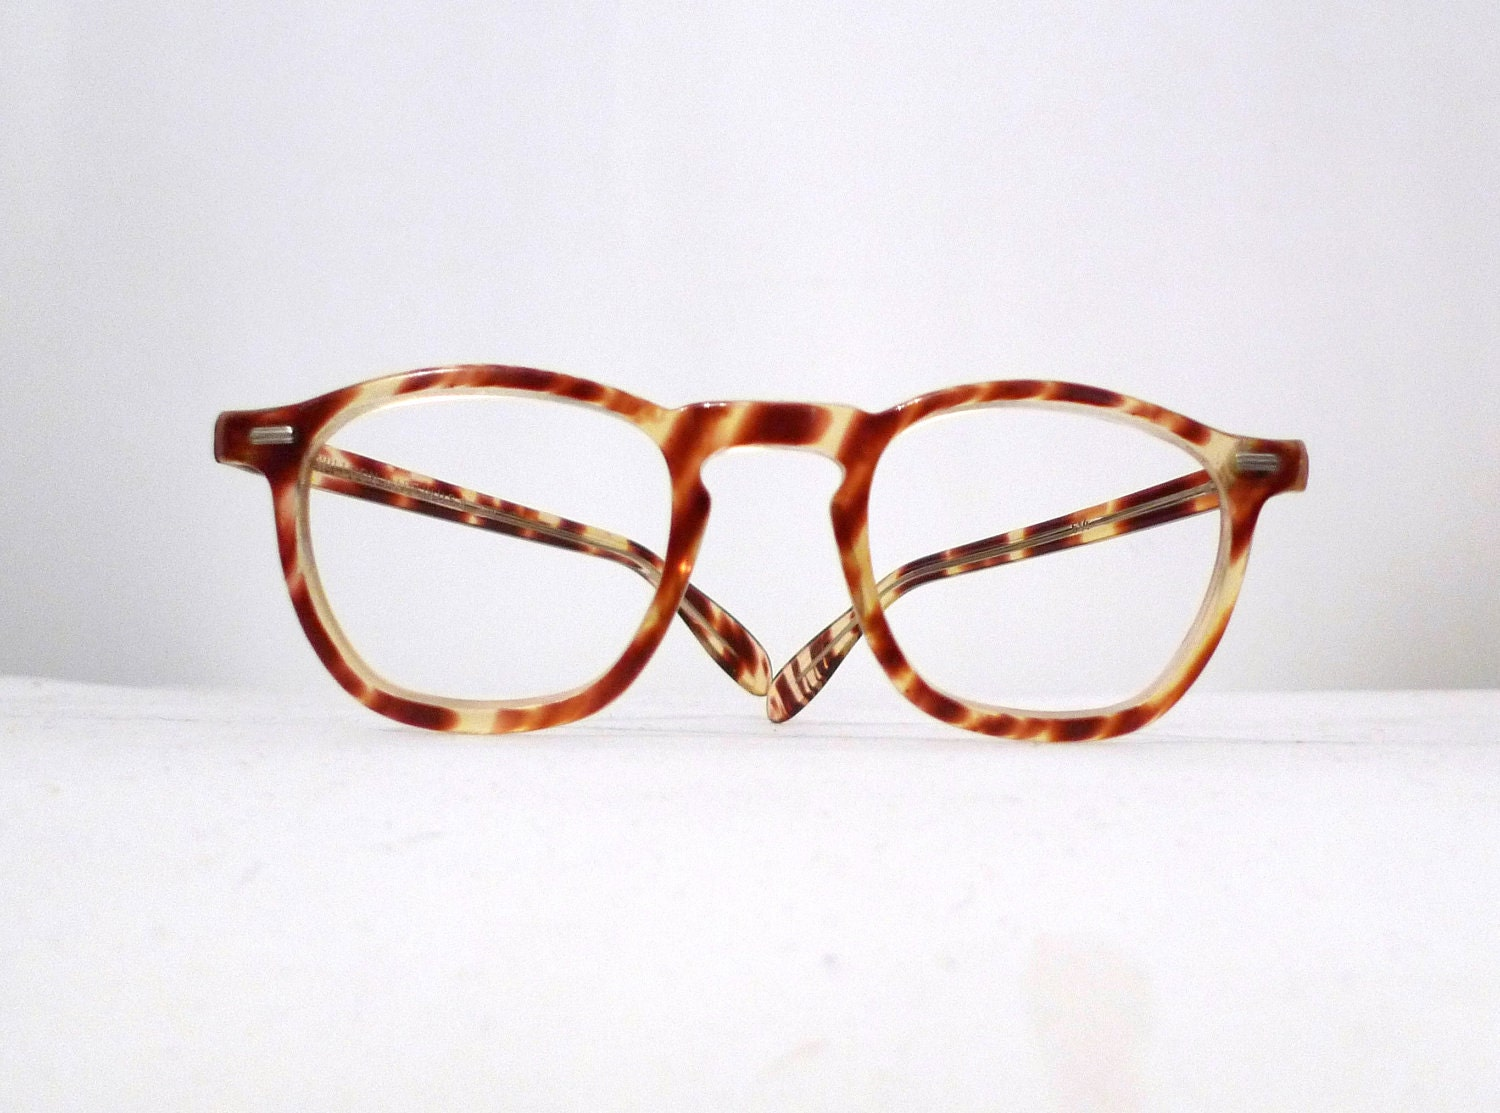 sale 48 24 willson usa tortoise shell eyeglasses classic mad